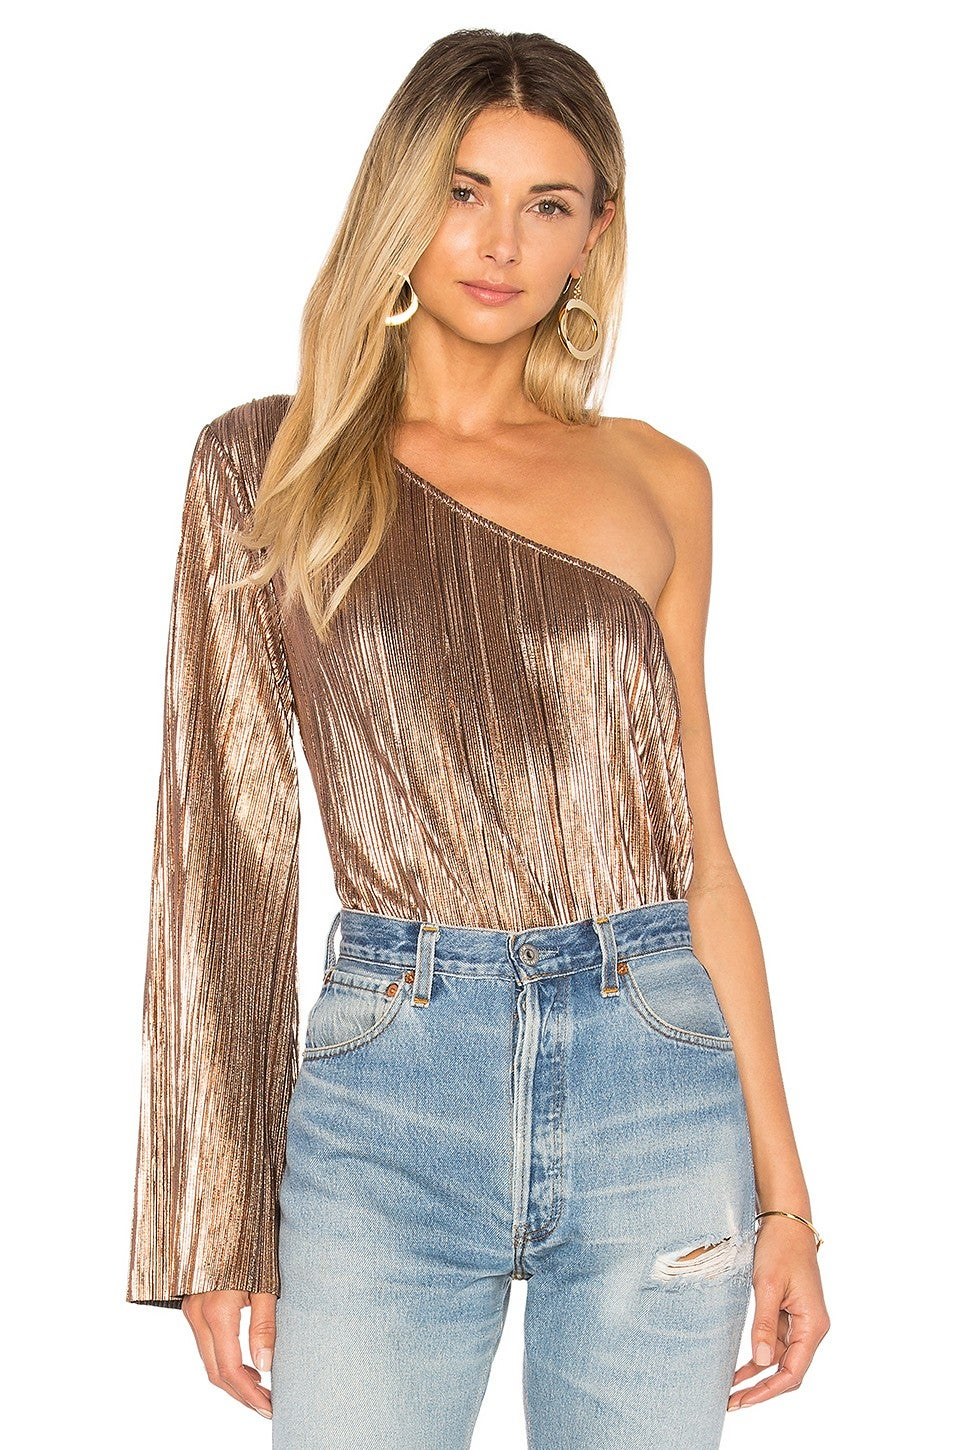 House of Harlow gold one shoulder bodysuit